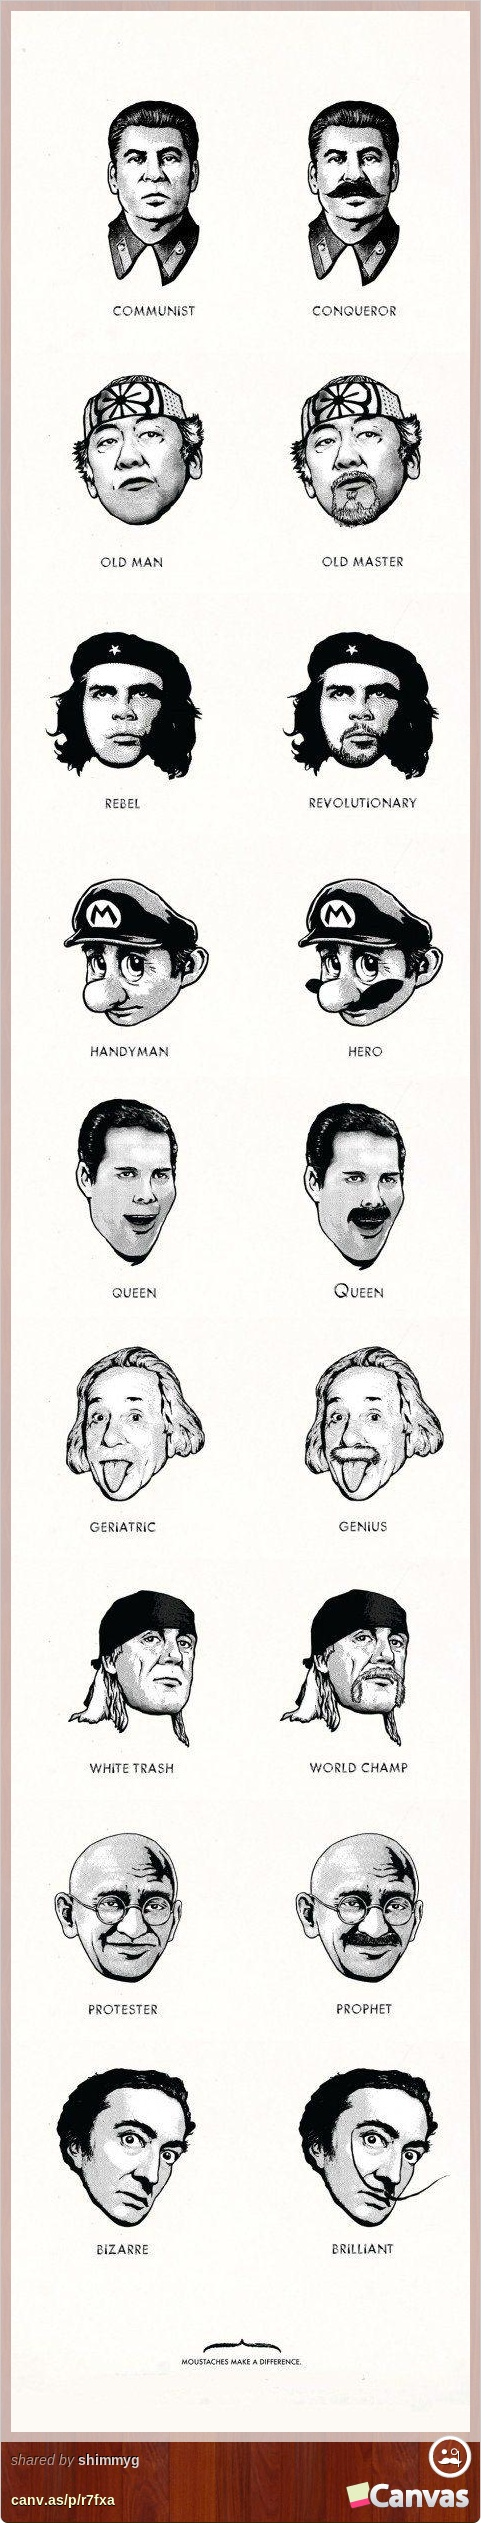 Nerd fashion: mustaches make a difference